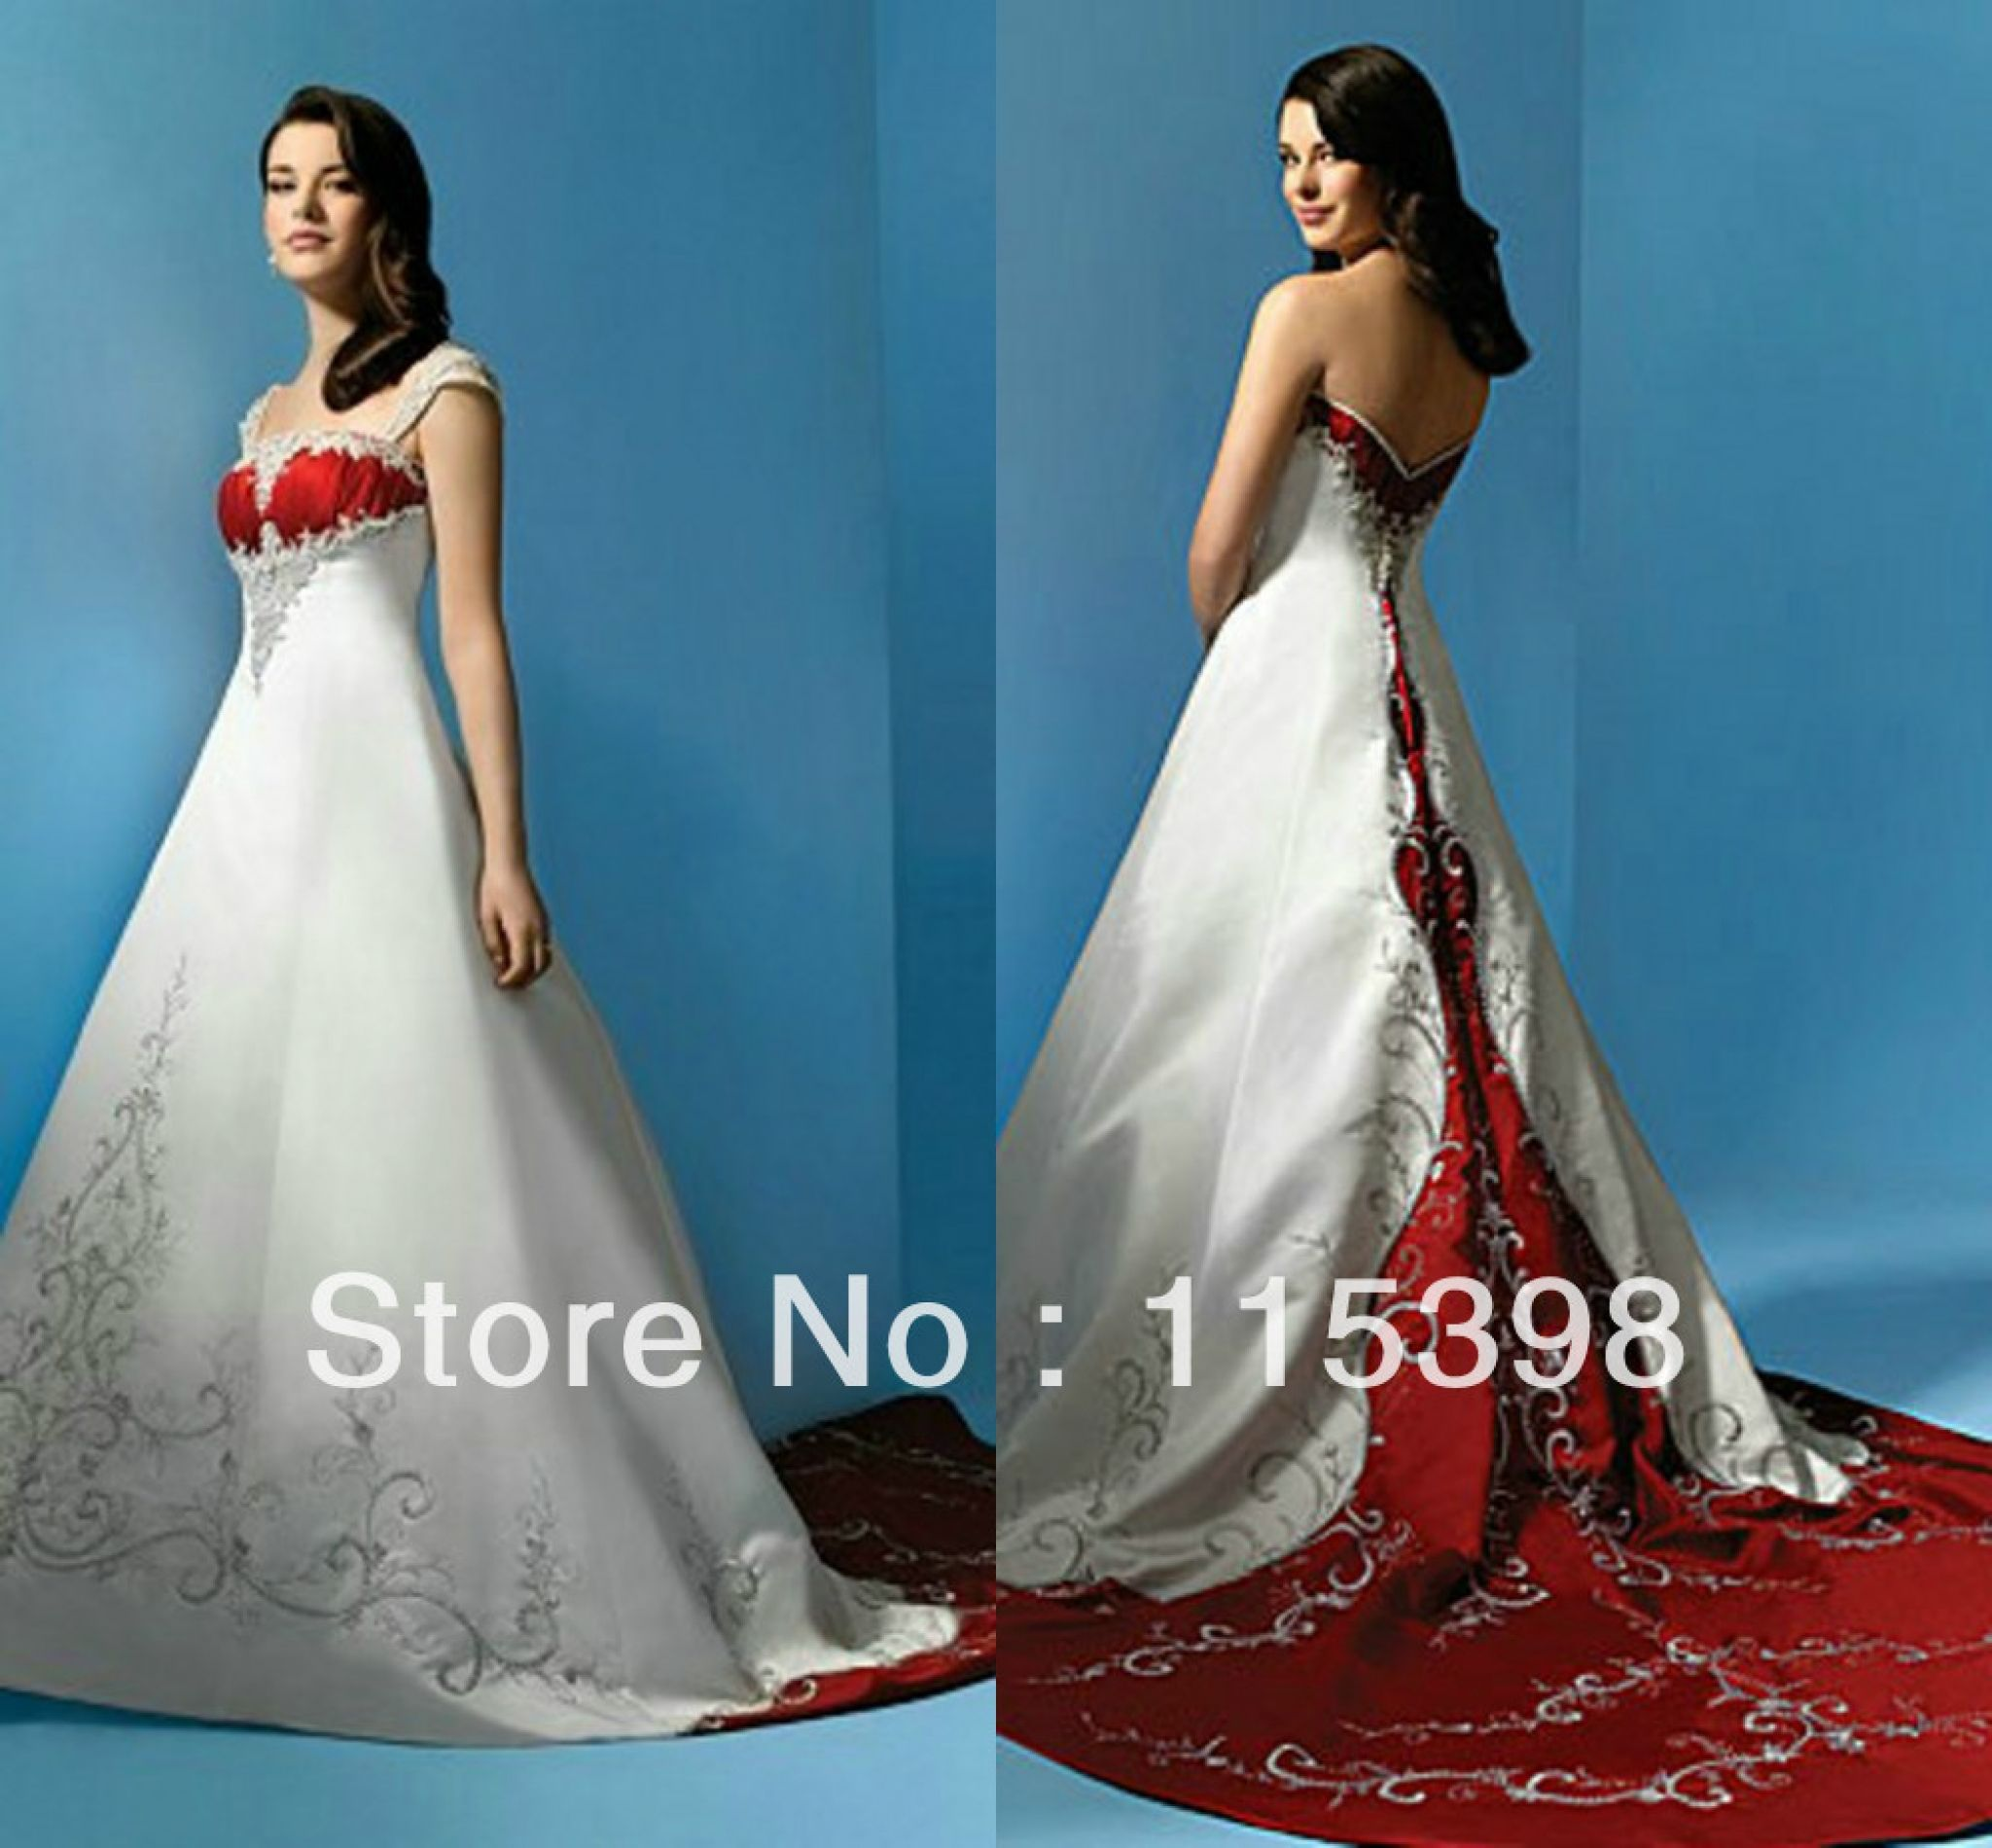 red and white wedding dresses uk - best dresses for wedding Check ...